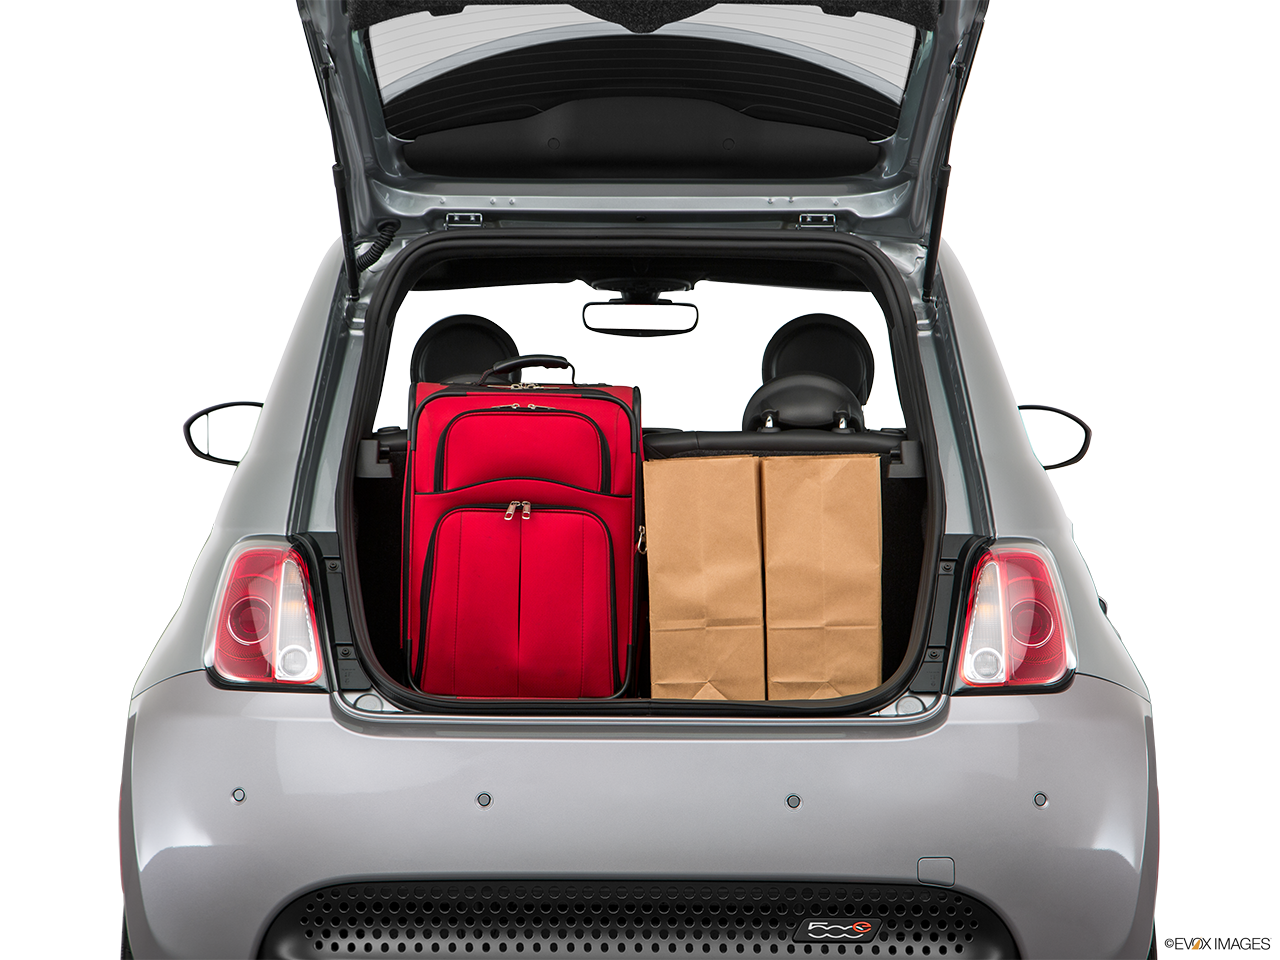 Trunk view of the Fiat 500e